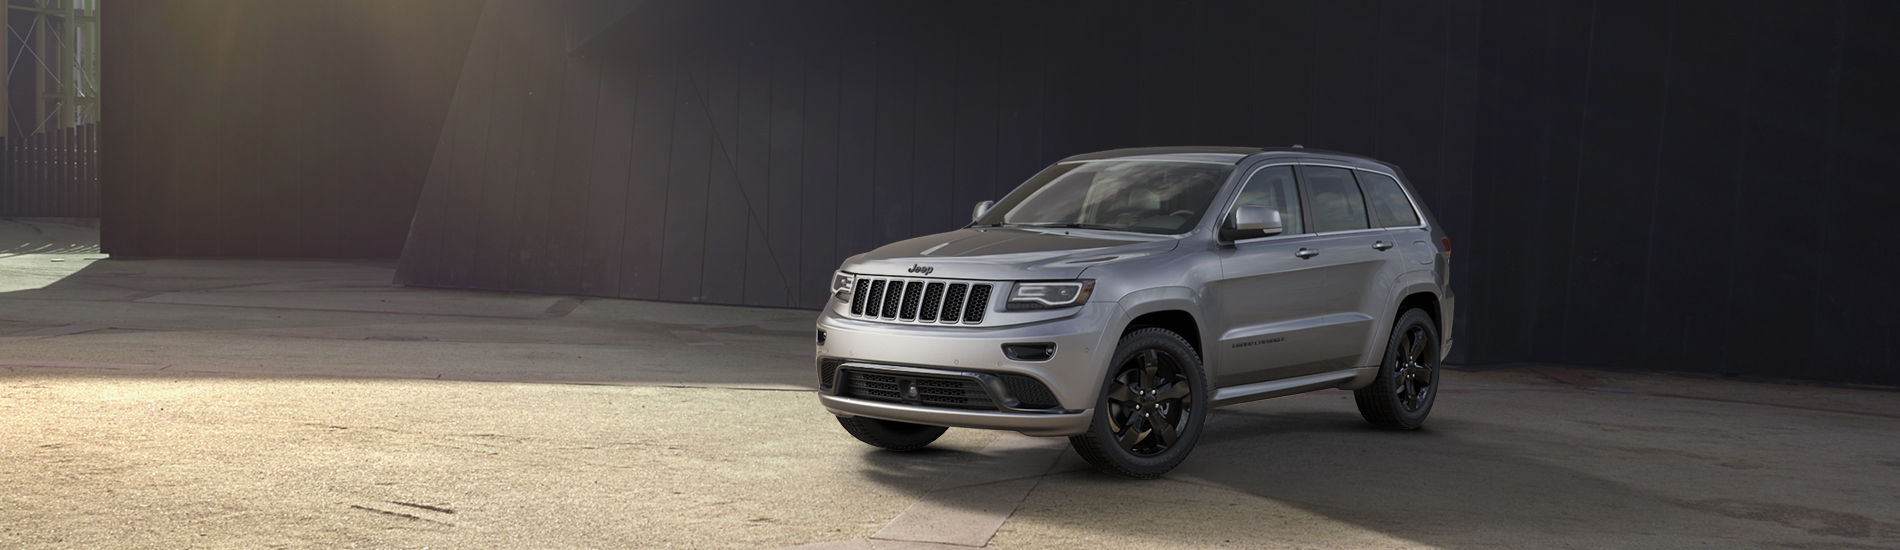 southfield lease dodge headquarters a jeep ram in turn chrysler